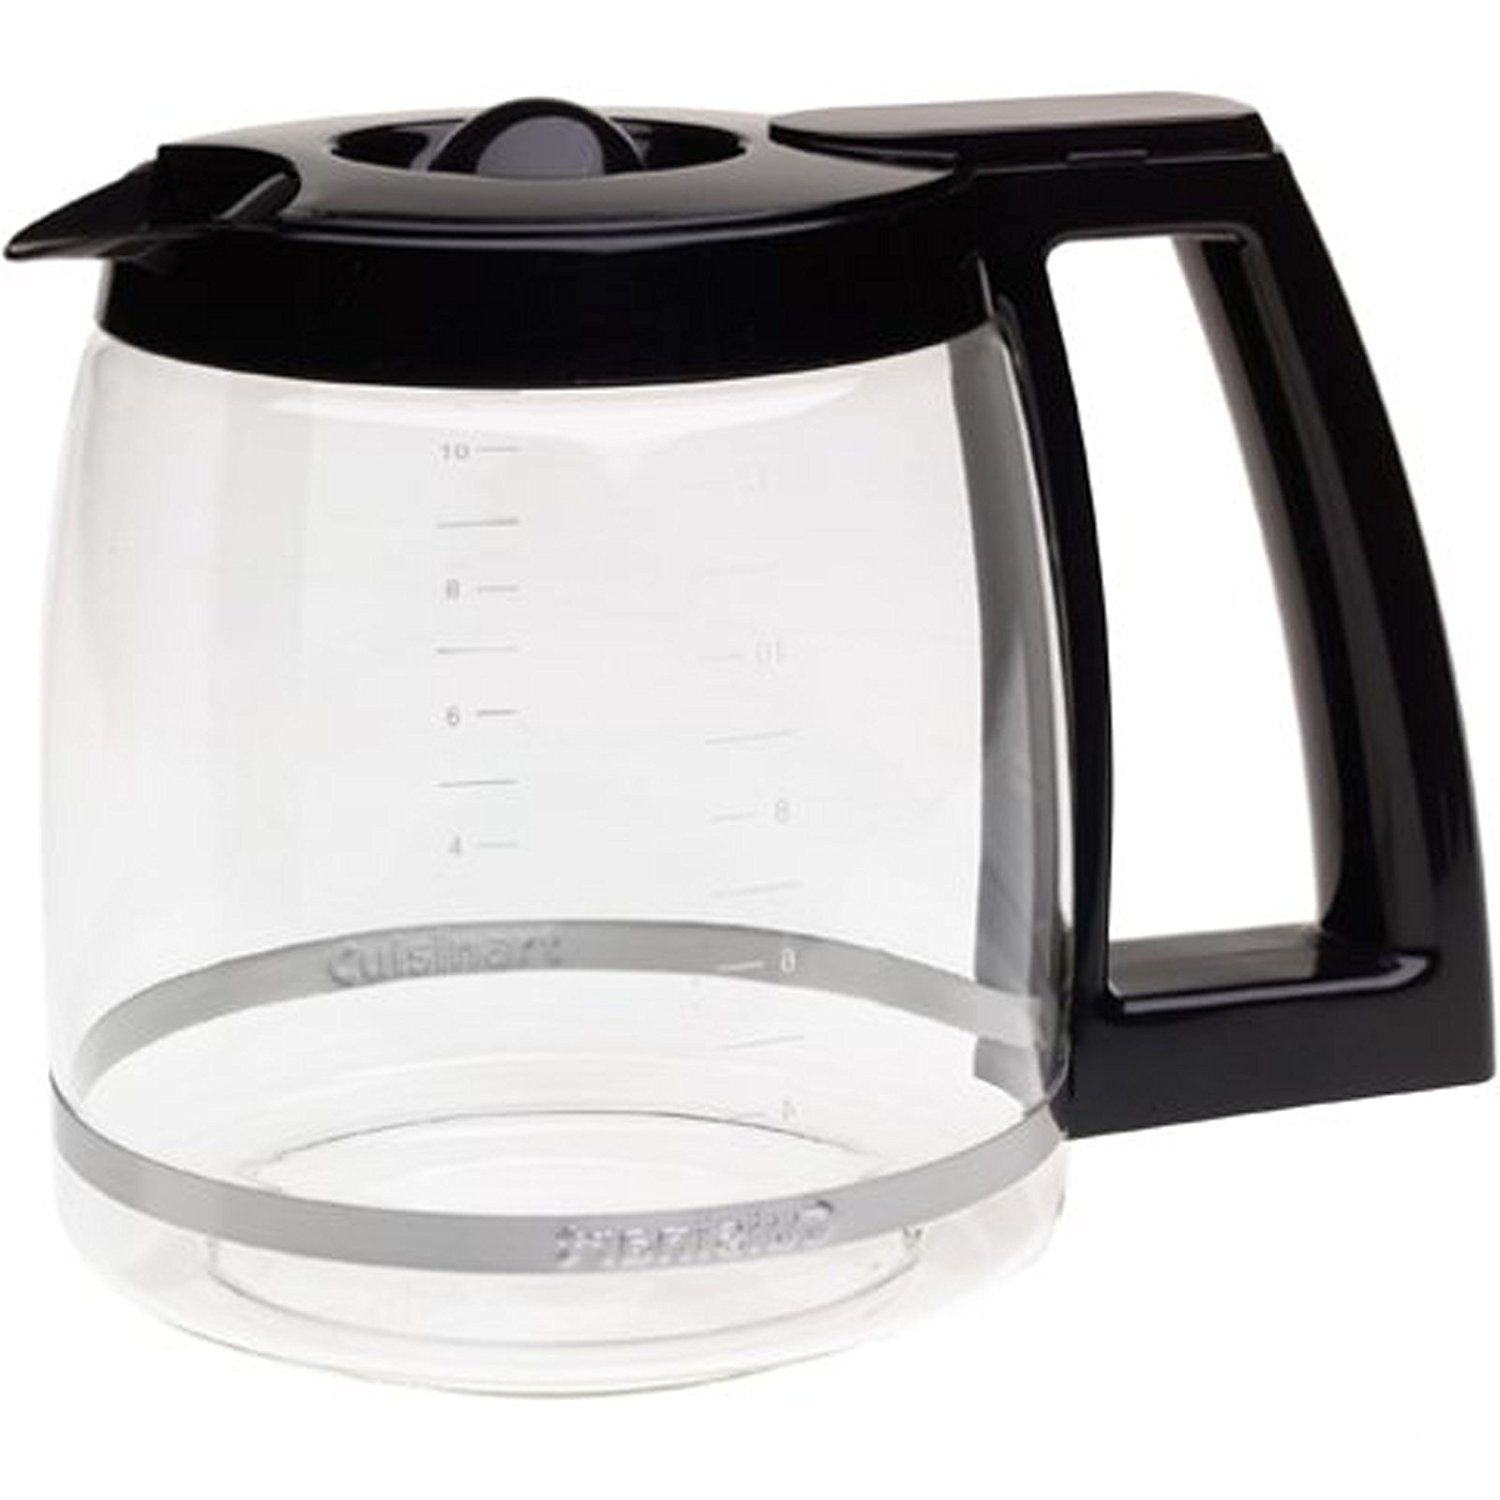 Cuisinart 12 Cup Coffee Maker Carafe CBC00BKPC1 Glass ...